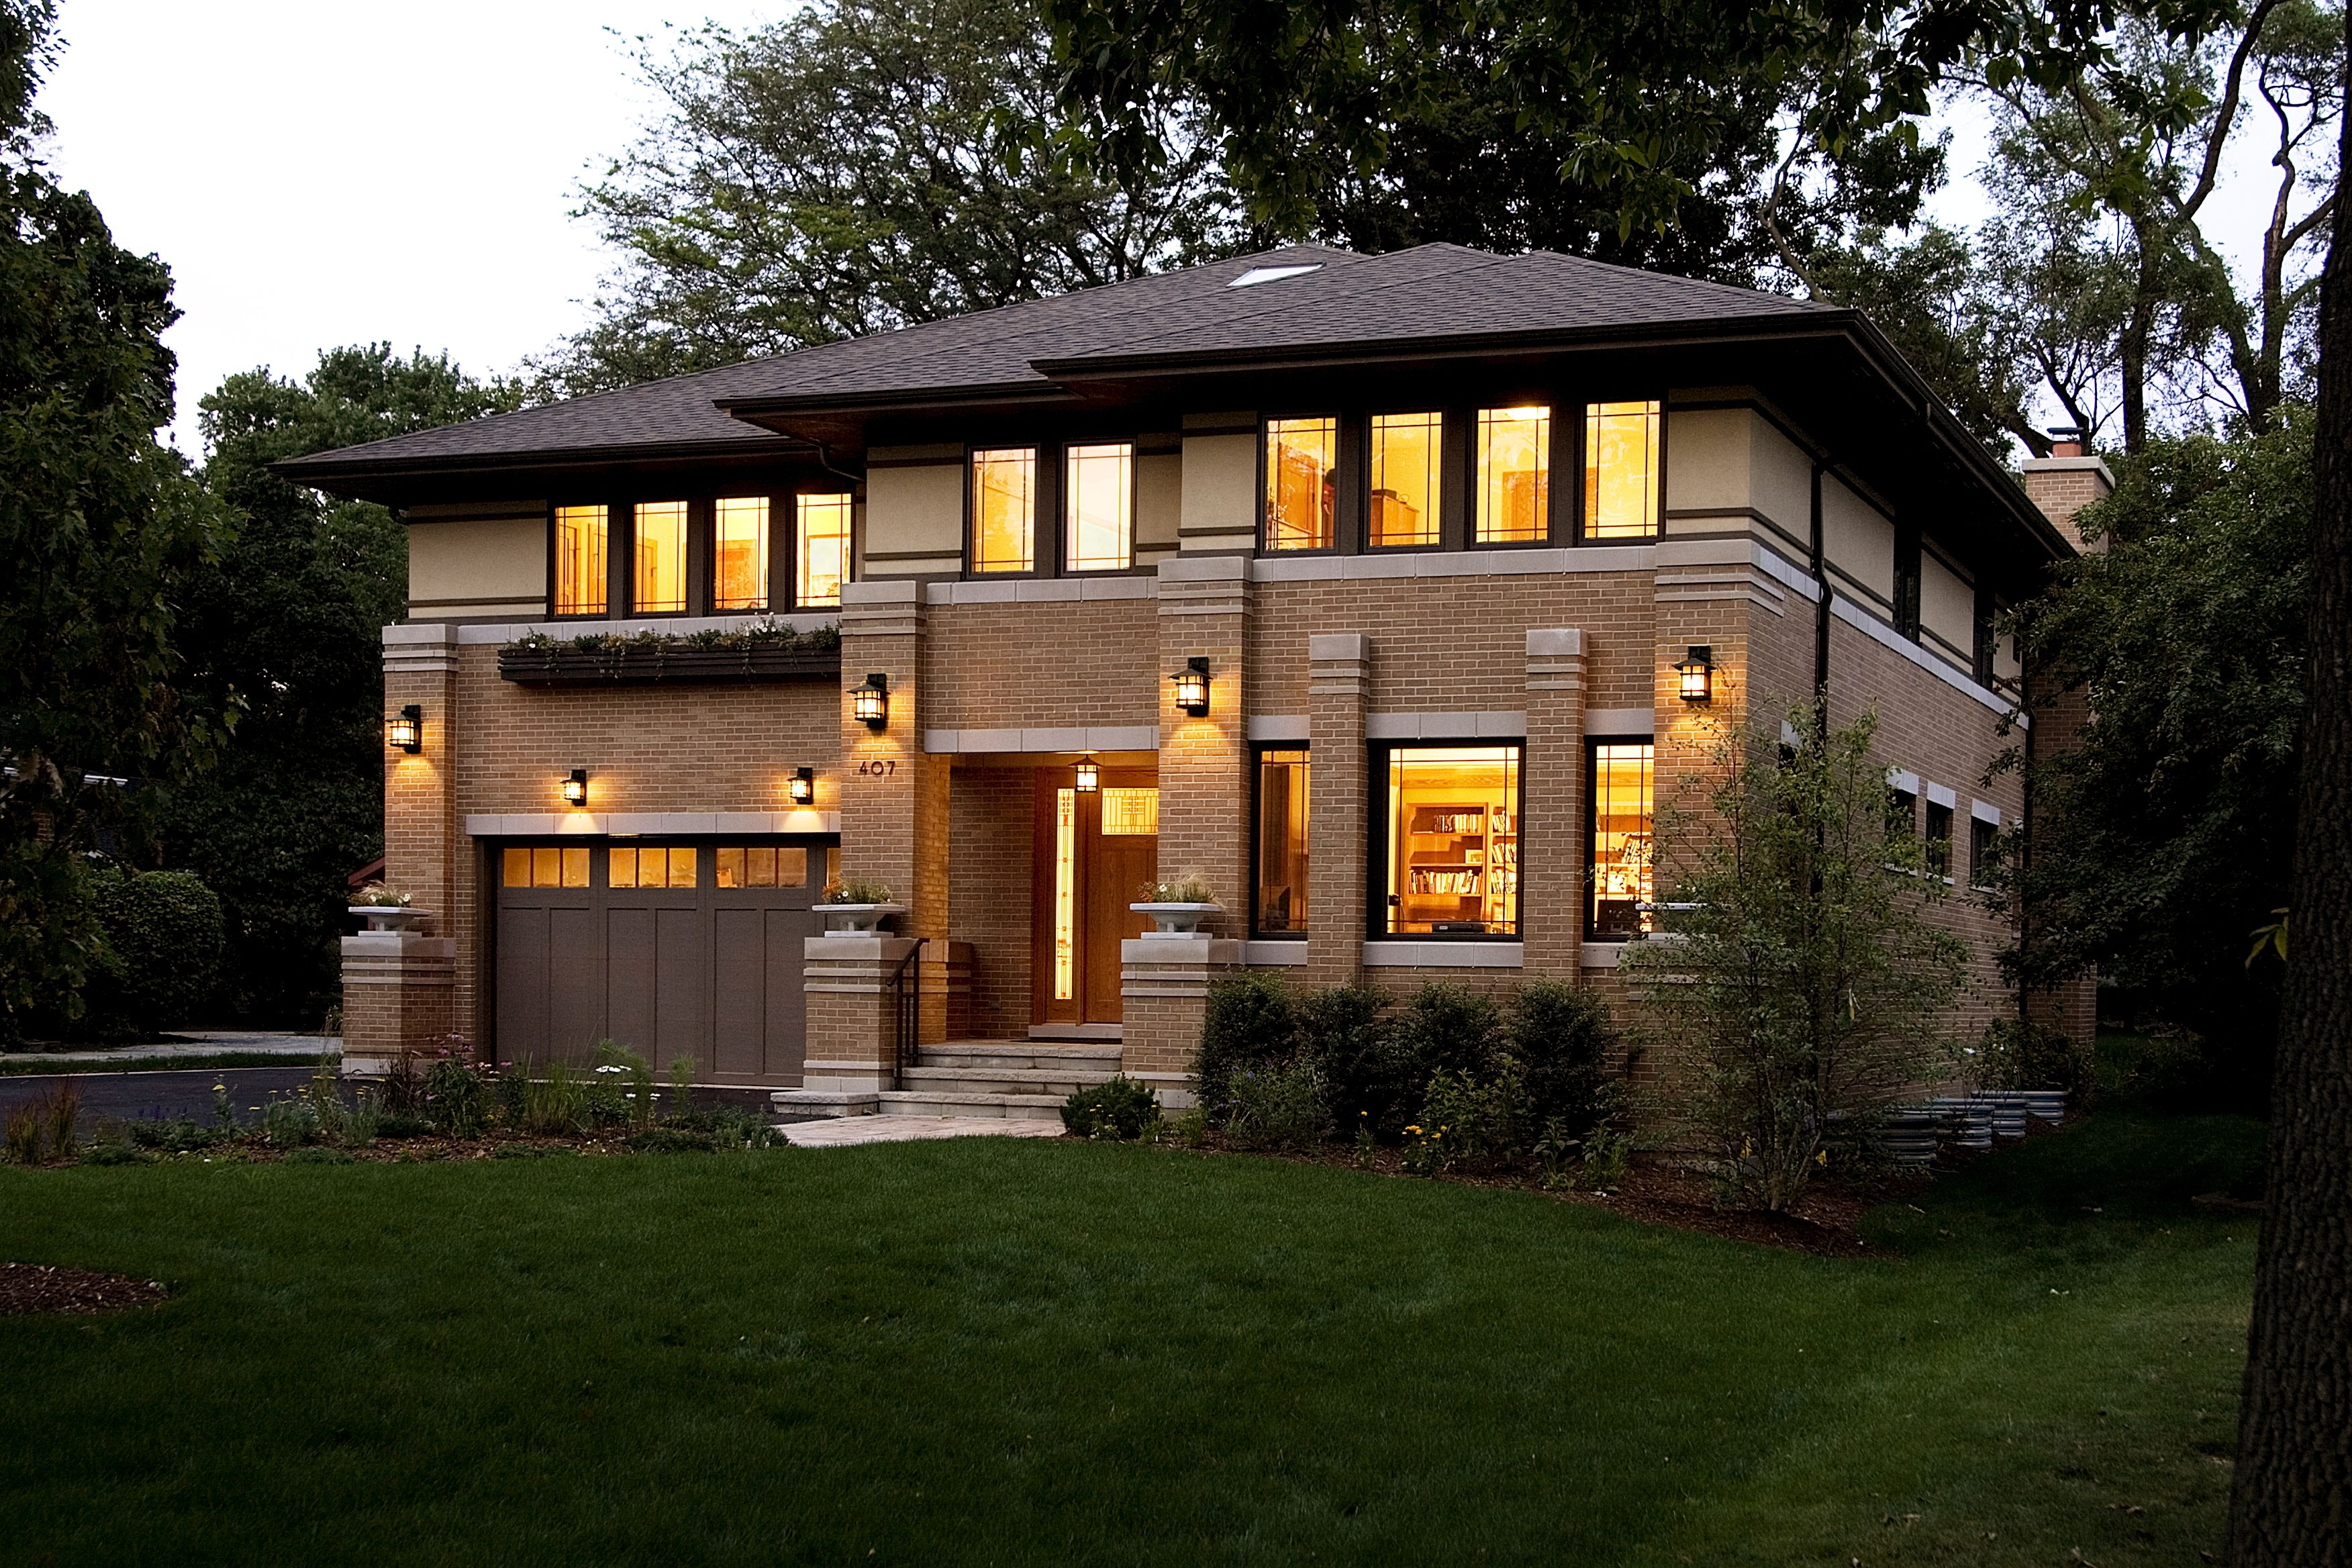 New prairie style house west studio frank lloyd wright for Modern prairie style homes